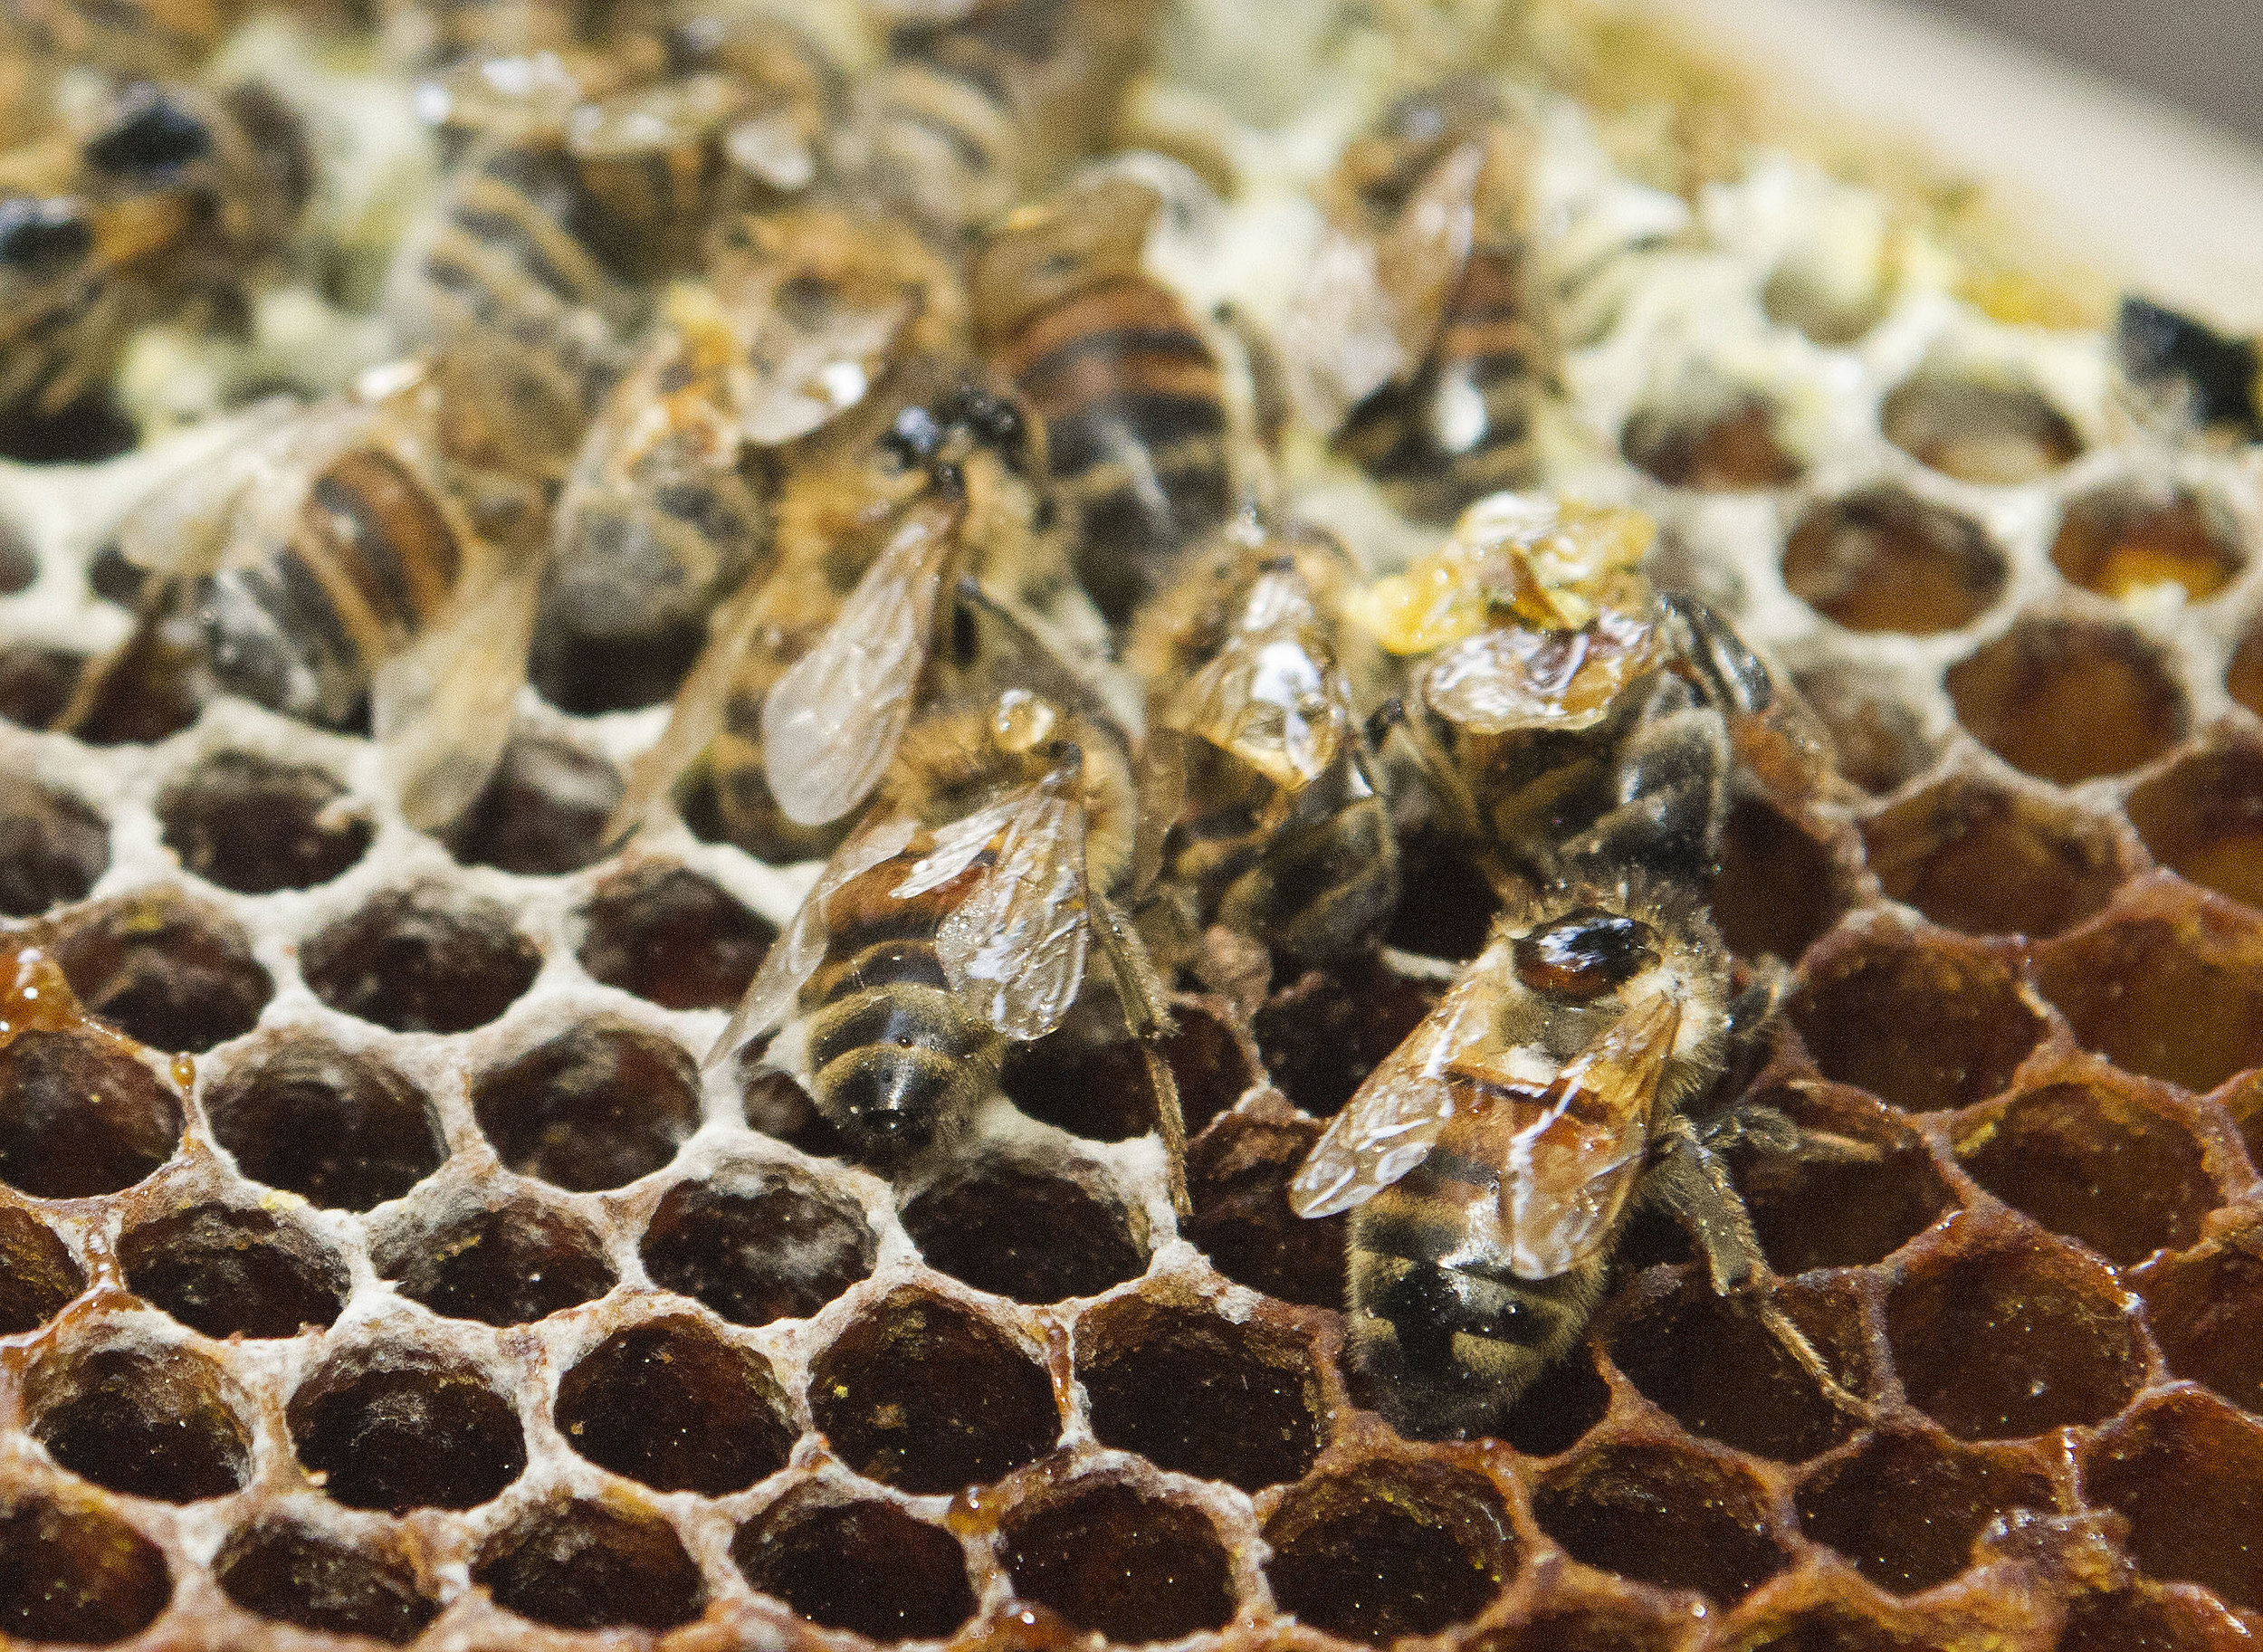 Samples of Small hive beetle were found in New Brunswick on June 3 and 4 in hives imported from Ontario. The beetle's larvae is the main cause of damage, devouring pollen, bee larvae, and honey. The pest also defecates in honey, spoiling it. (New Brunswick Department of Agriculture, Aquaculture and Fisheries photo)